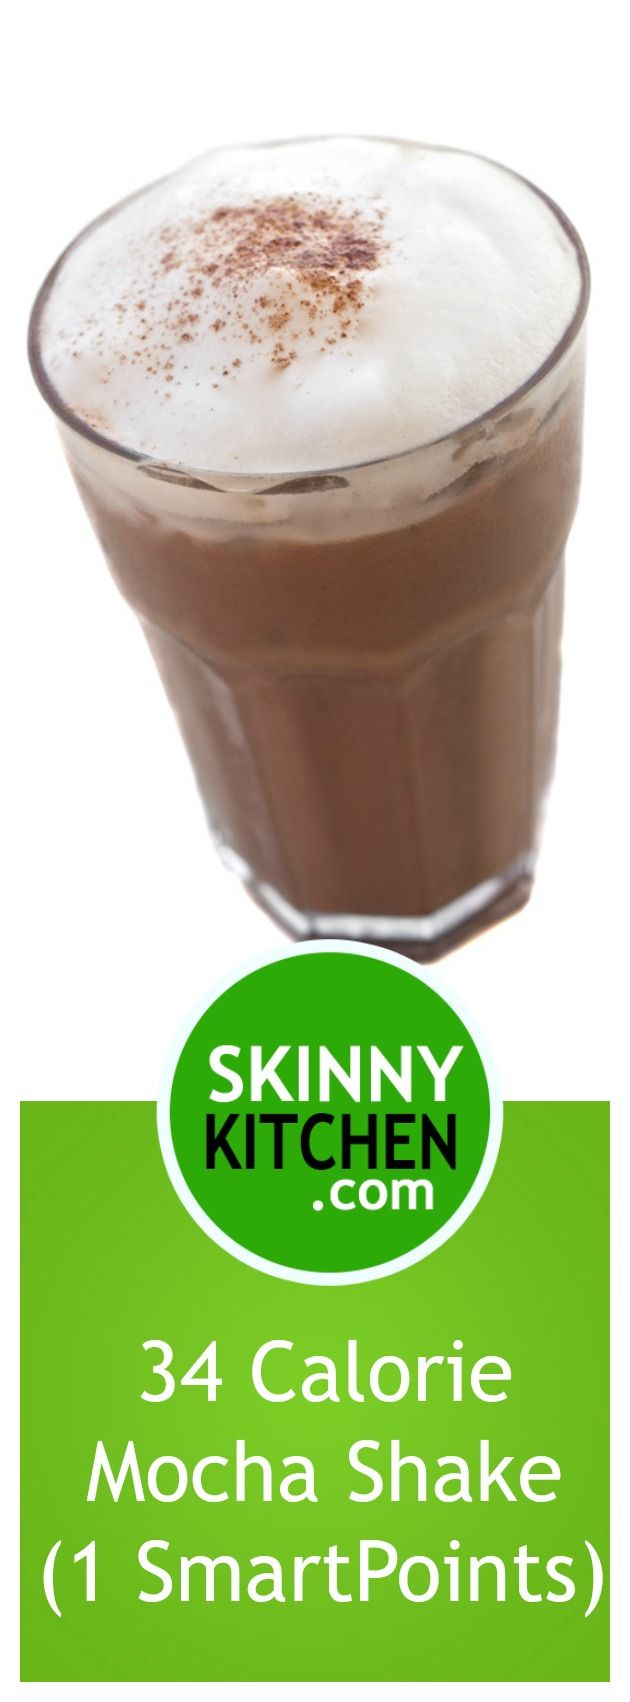 34 Calorie Mocha Shake (5 Ingredients, 1 SmartPoints). Coffee and chocolate blended until yumminess! Each has 34 calories & just 1 SmartPoints. Have fun skinny sipping! #glutenfree Easy swaps for dairy-free!